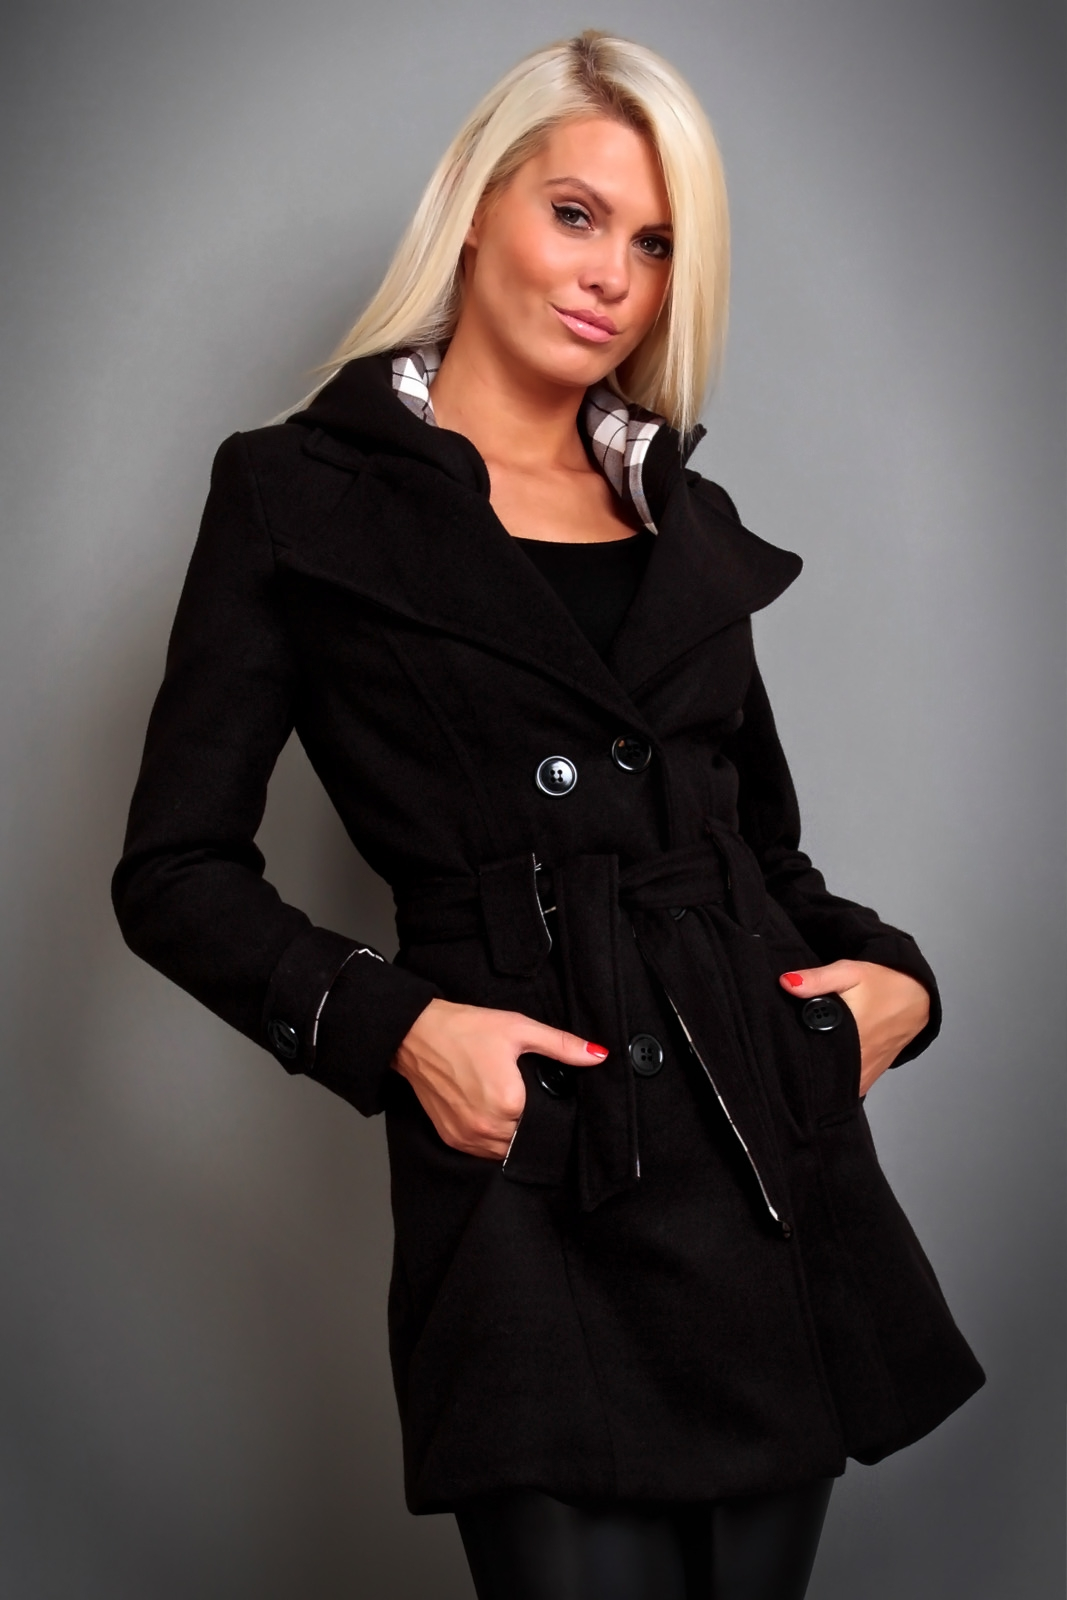 damen winter jacke mantel wolljacke mit kapuze 5 farben ebay. Black Bedroom Furniture Sets. Home Design Ideas